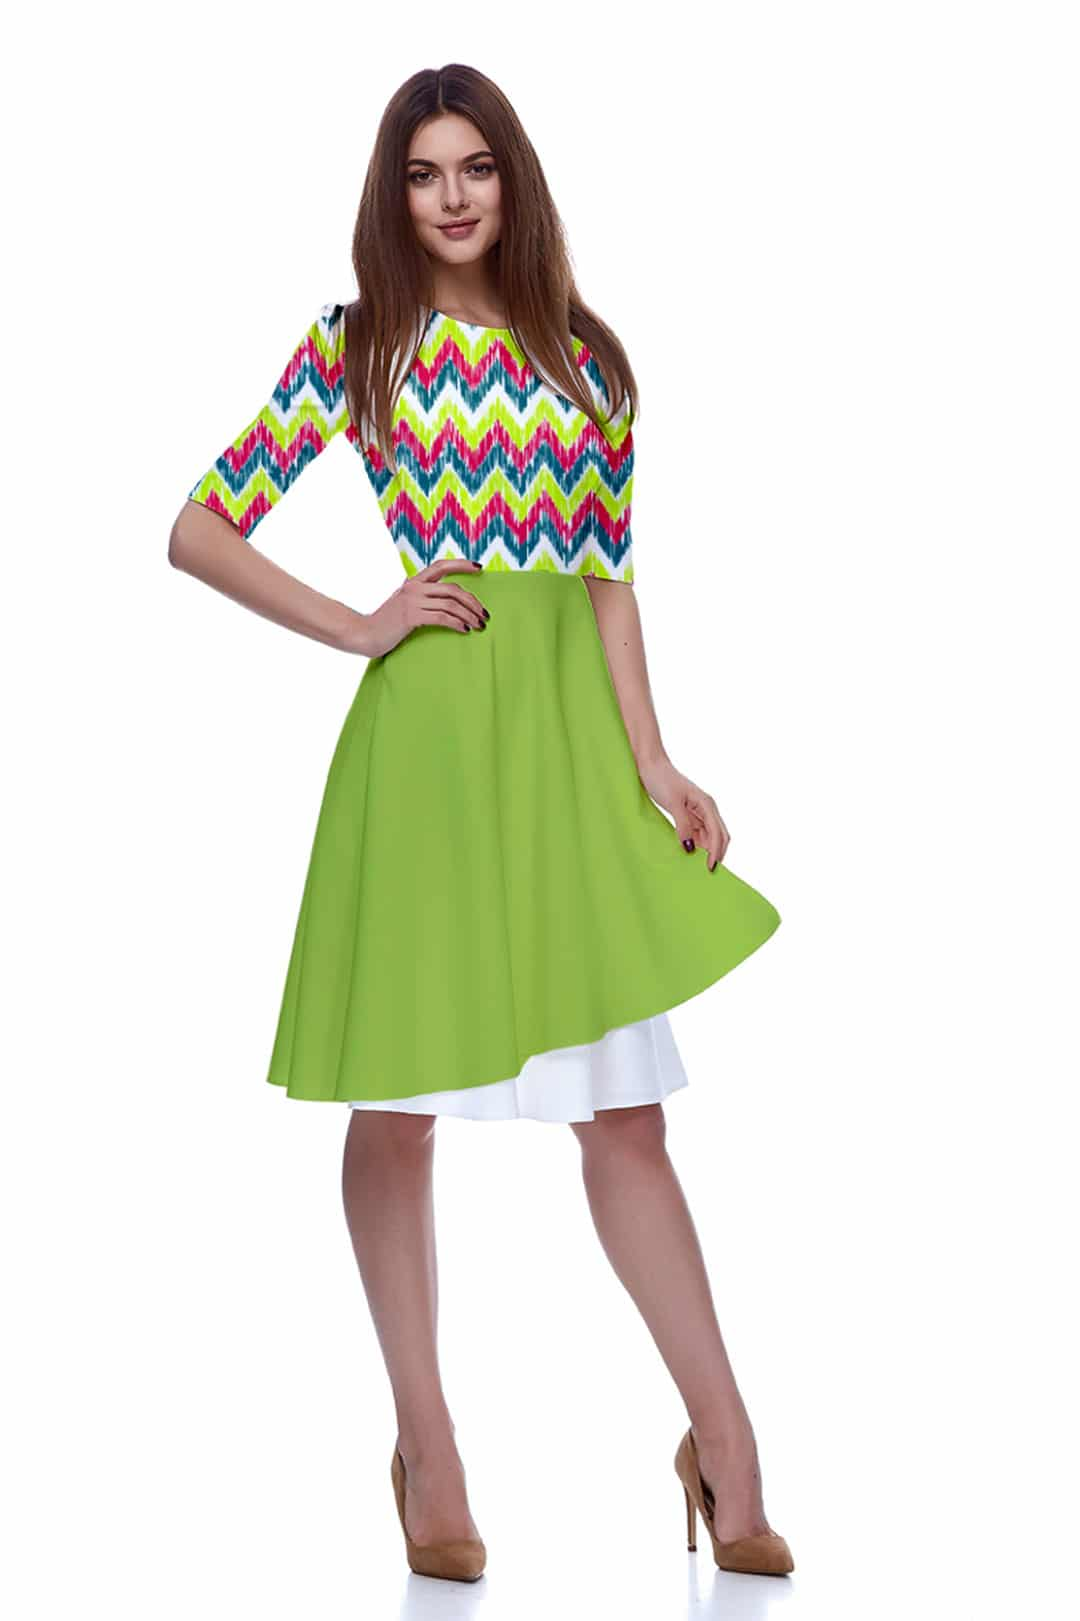 Georgette Fit and Flare Dress – Zig Zag